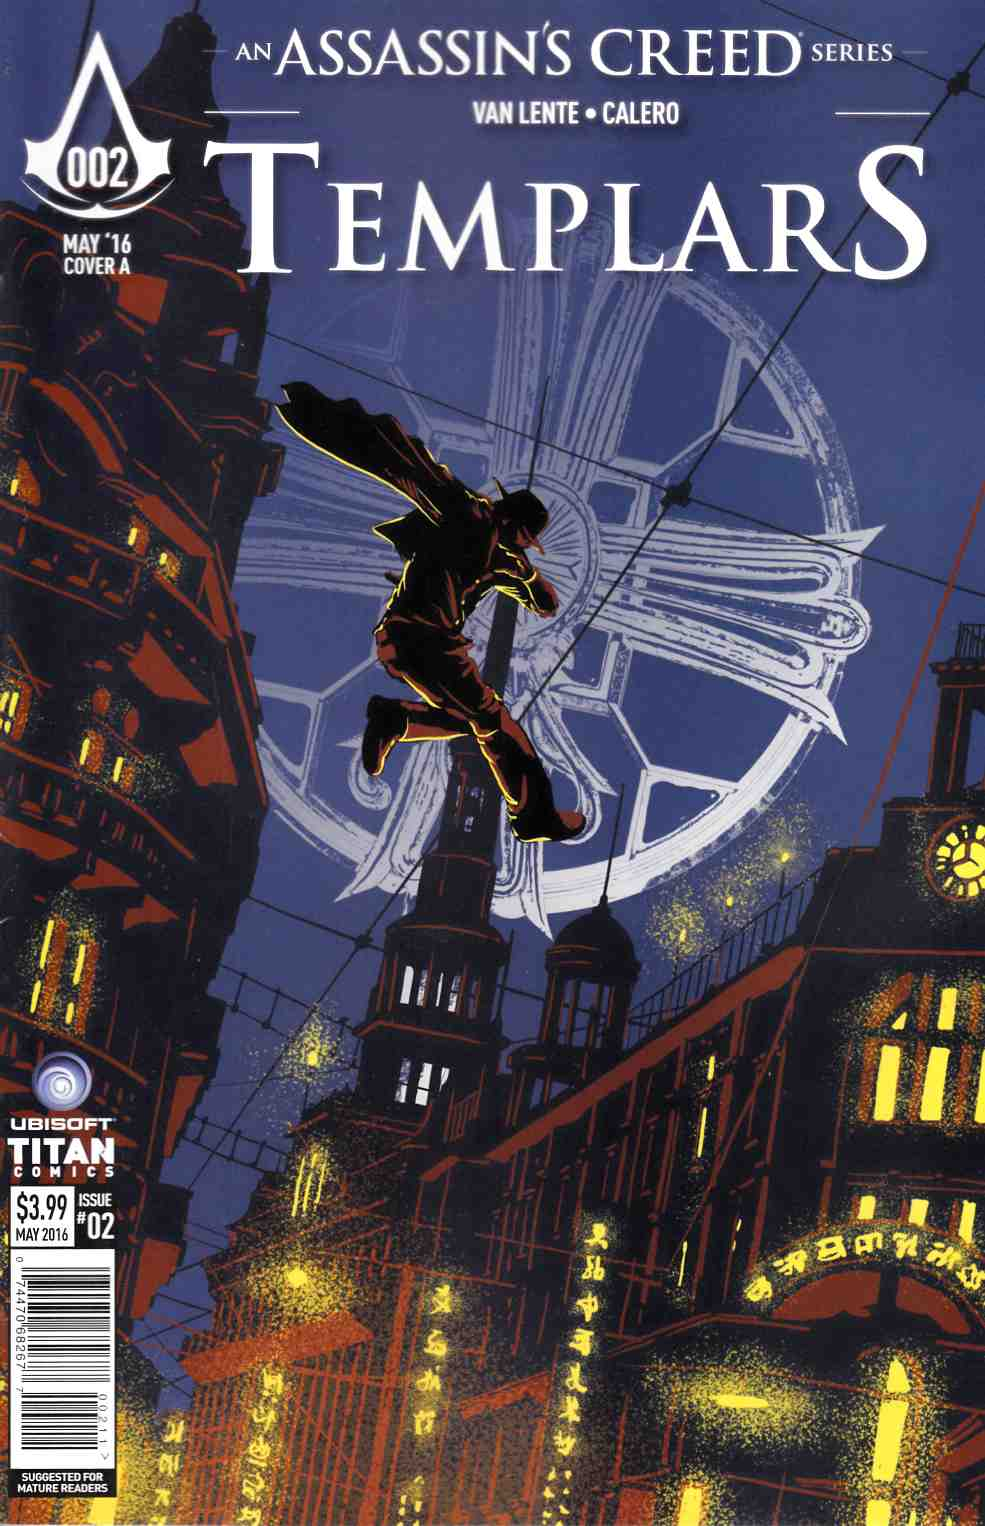 Assassins Creed Templars #2 Cover A [Titan Comic]